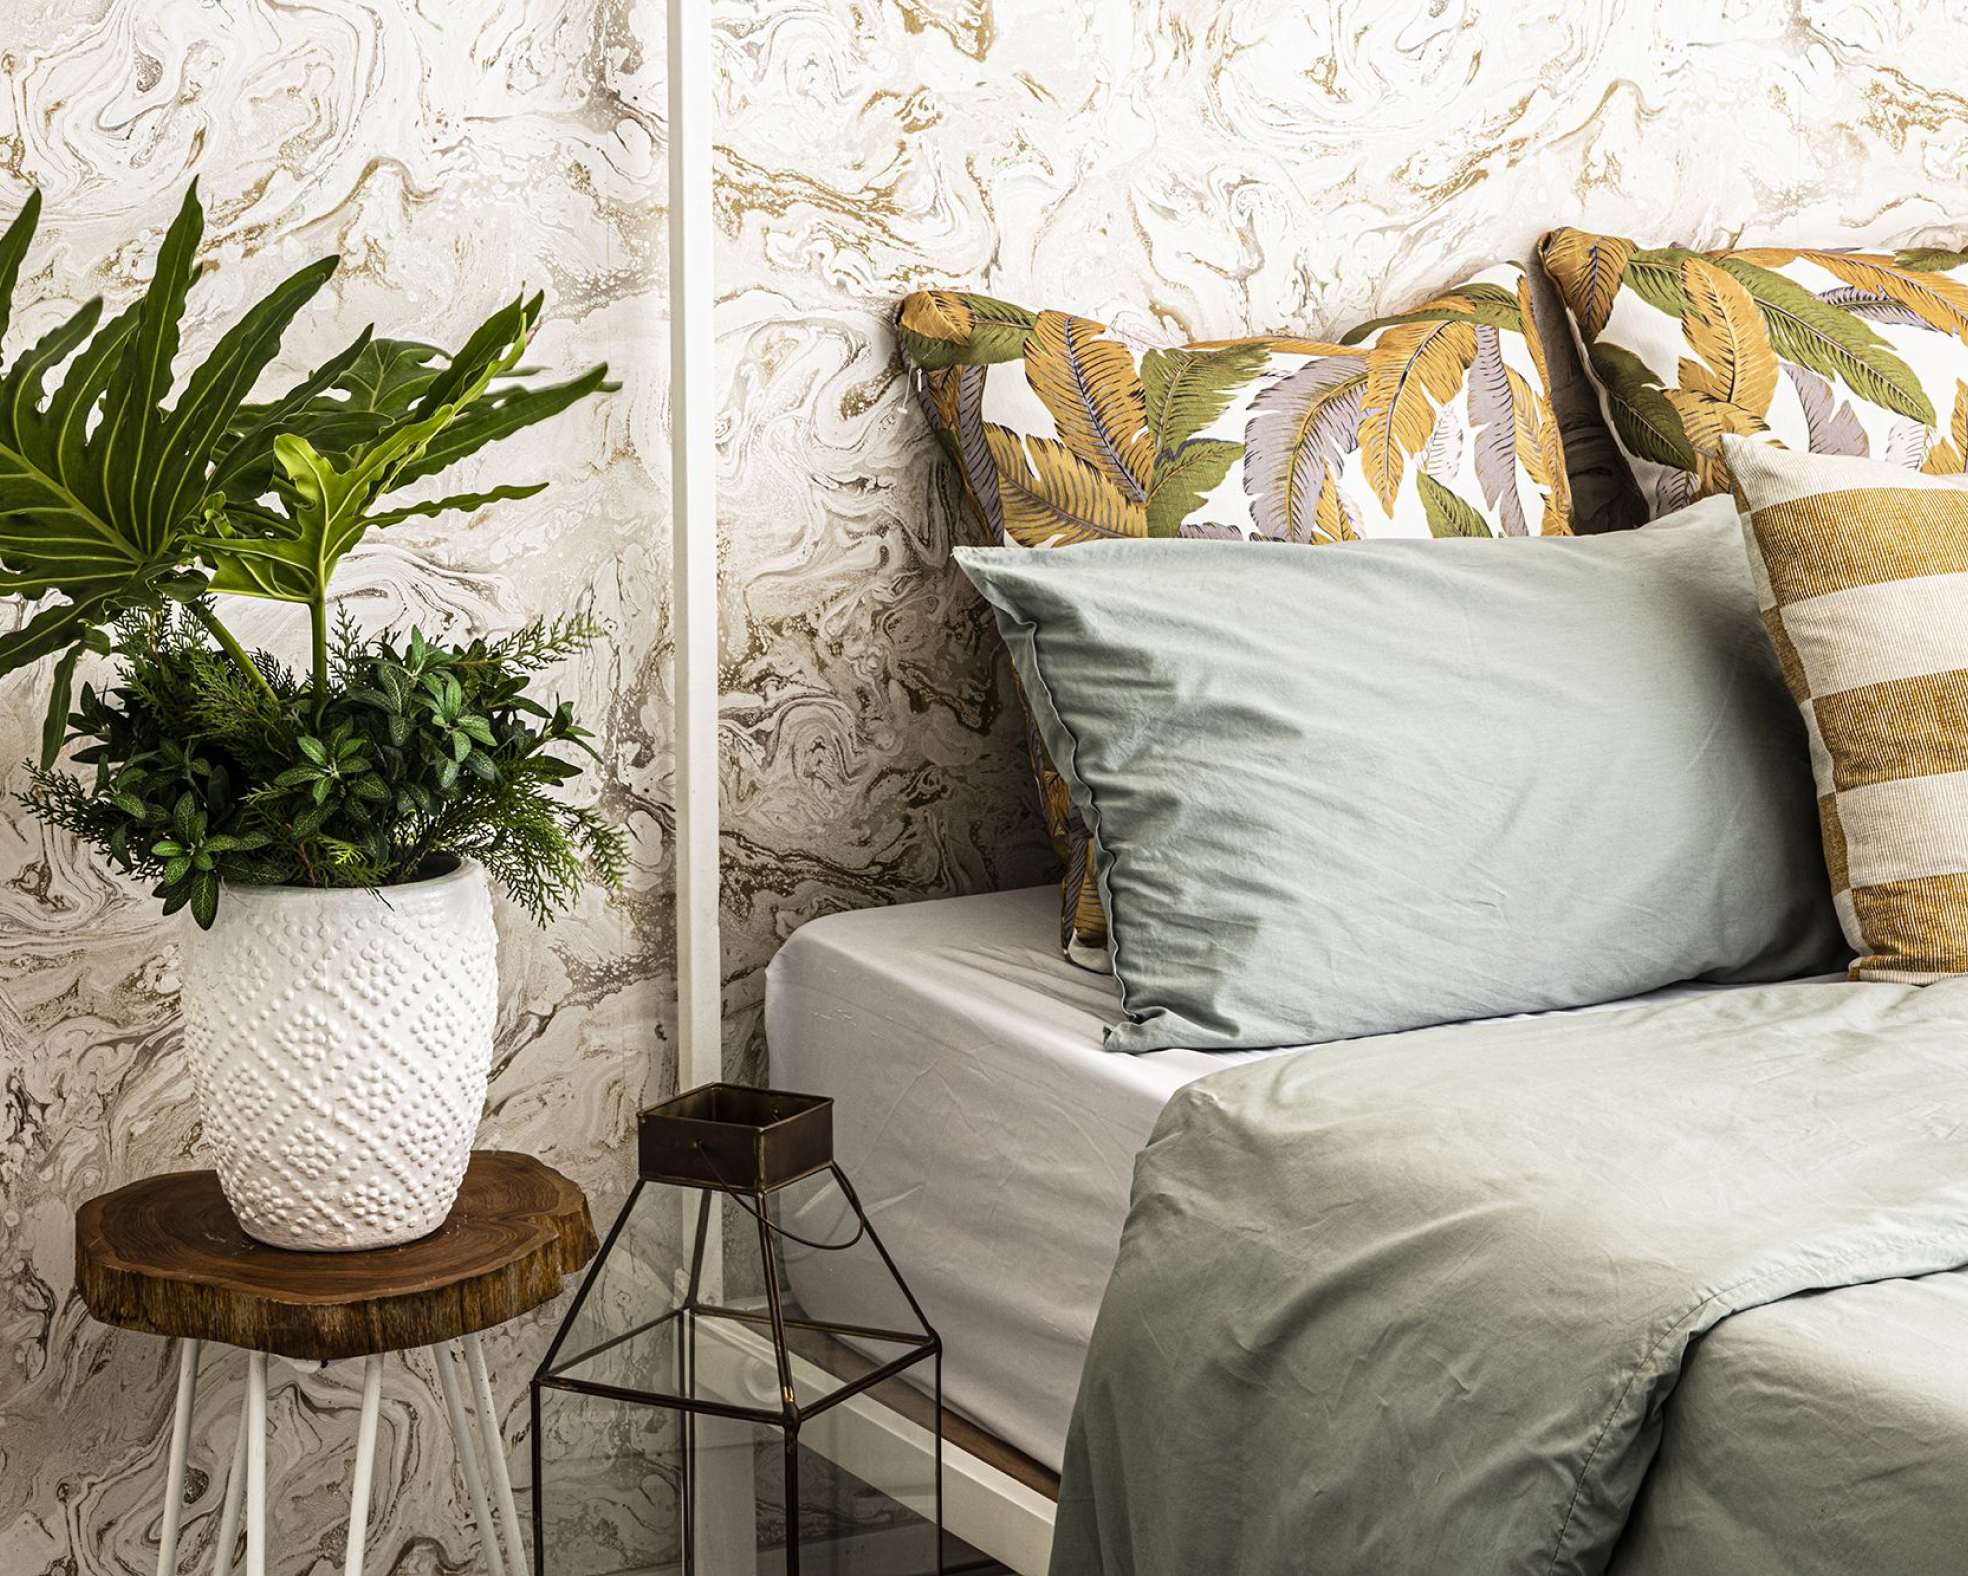 Flux Capacity: 5 Steps to (Constantly) Repurposing a Room